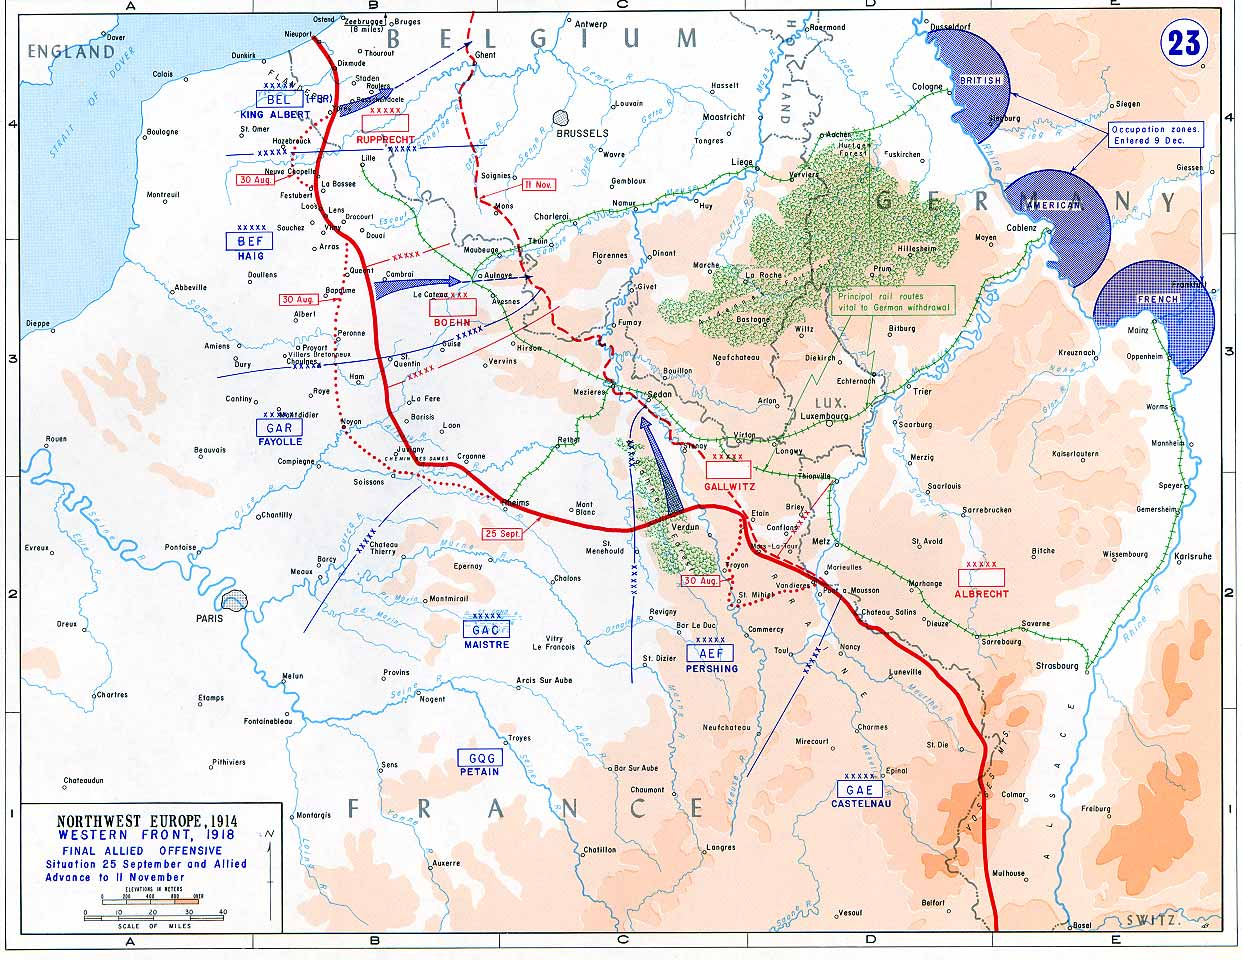 Map of the final Allied offensives on the en:Western Front (World War I), 1918